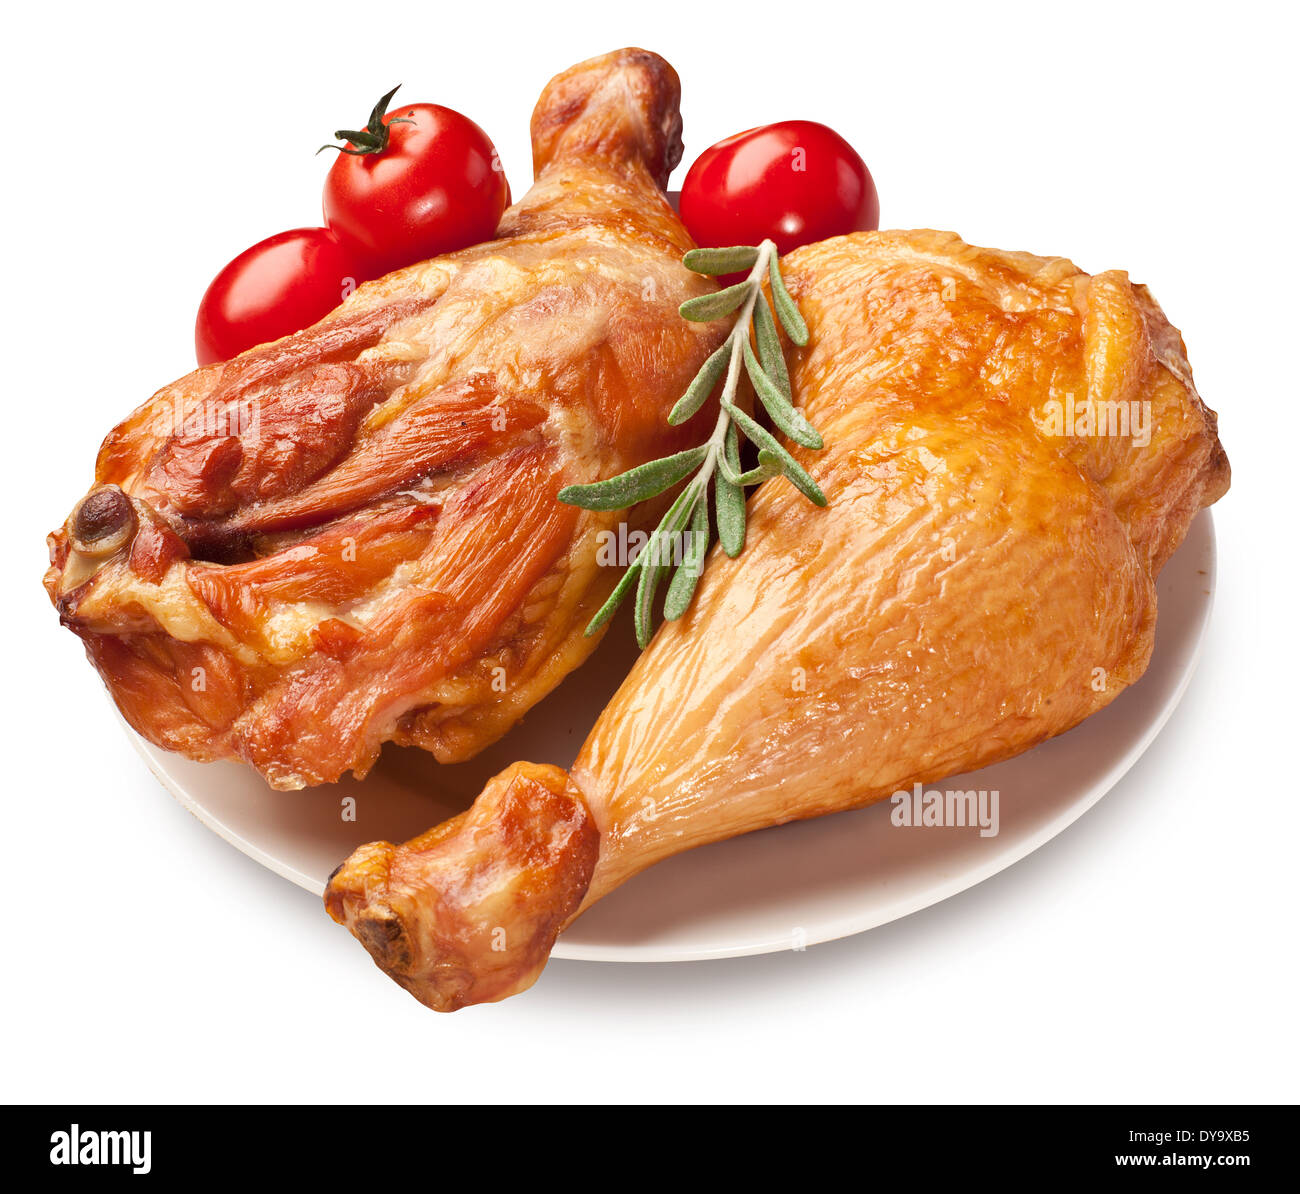 Smoked chicken with tomatoes on a white plate. Clipping paths. - Stock Image